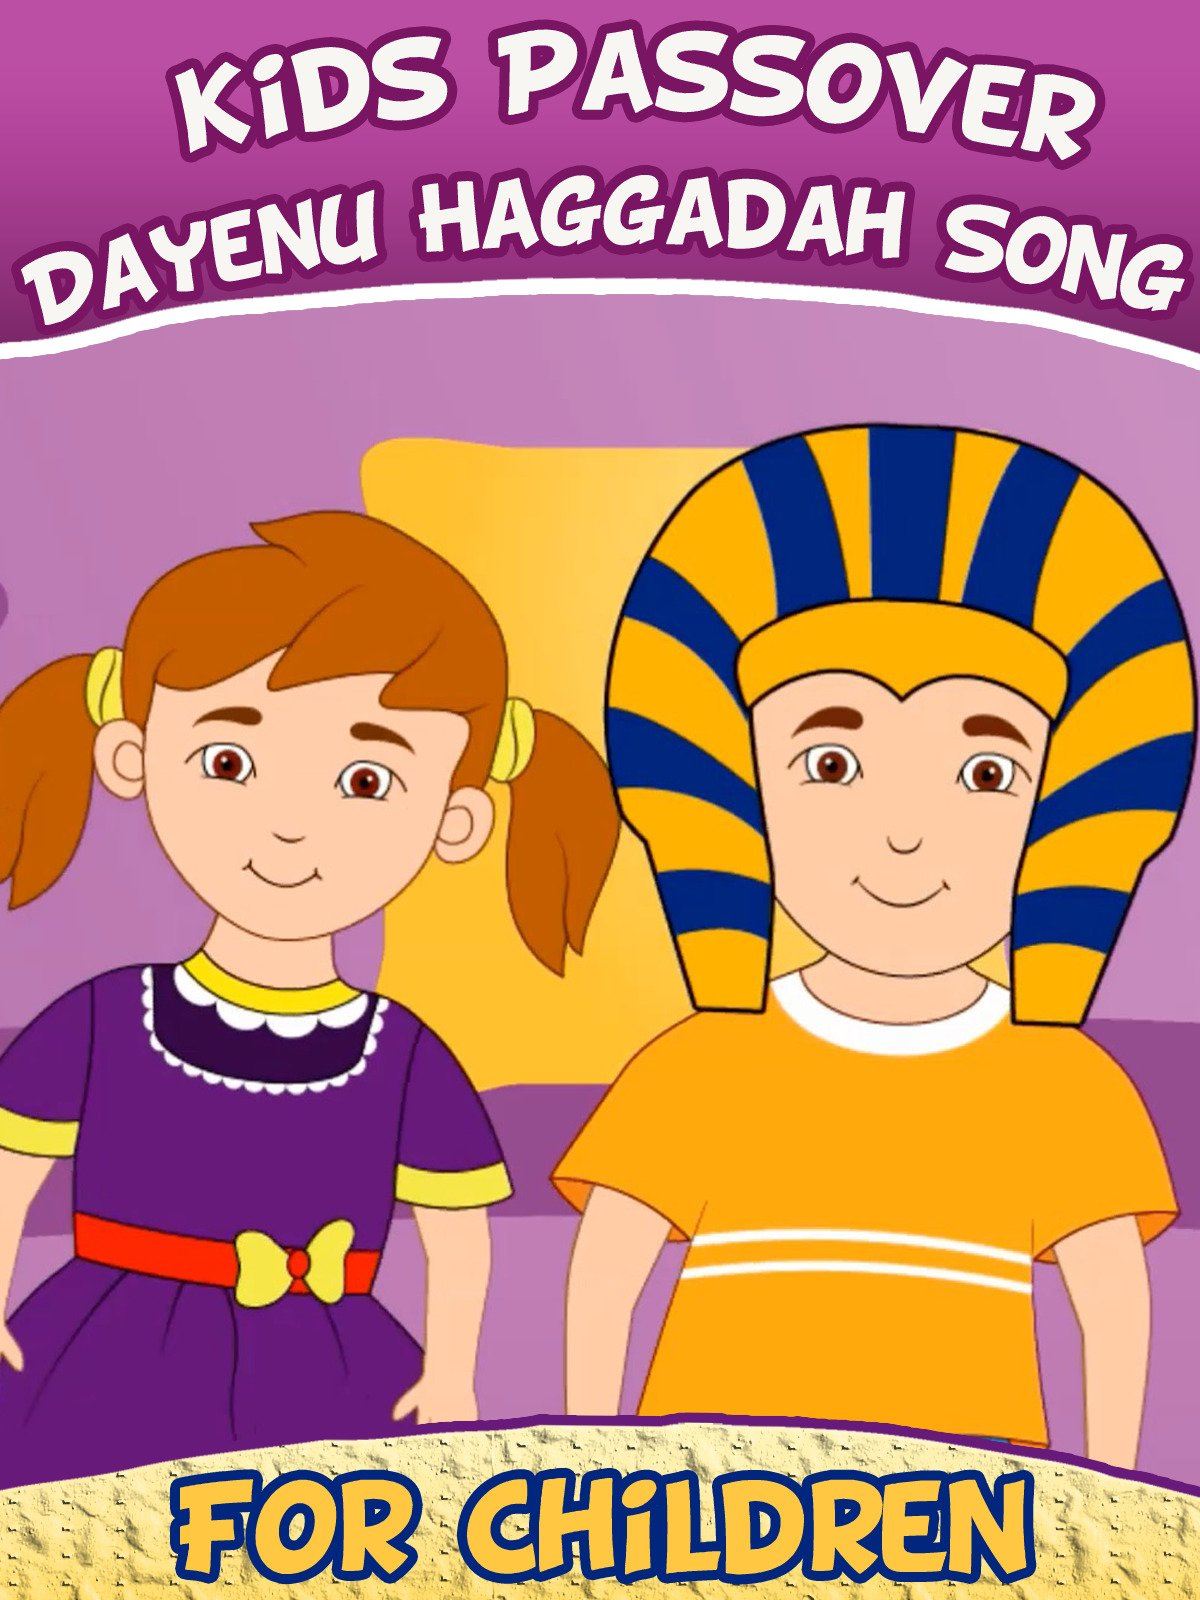 Kids Passover- Dayenu Haggadah Song for Children